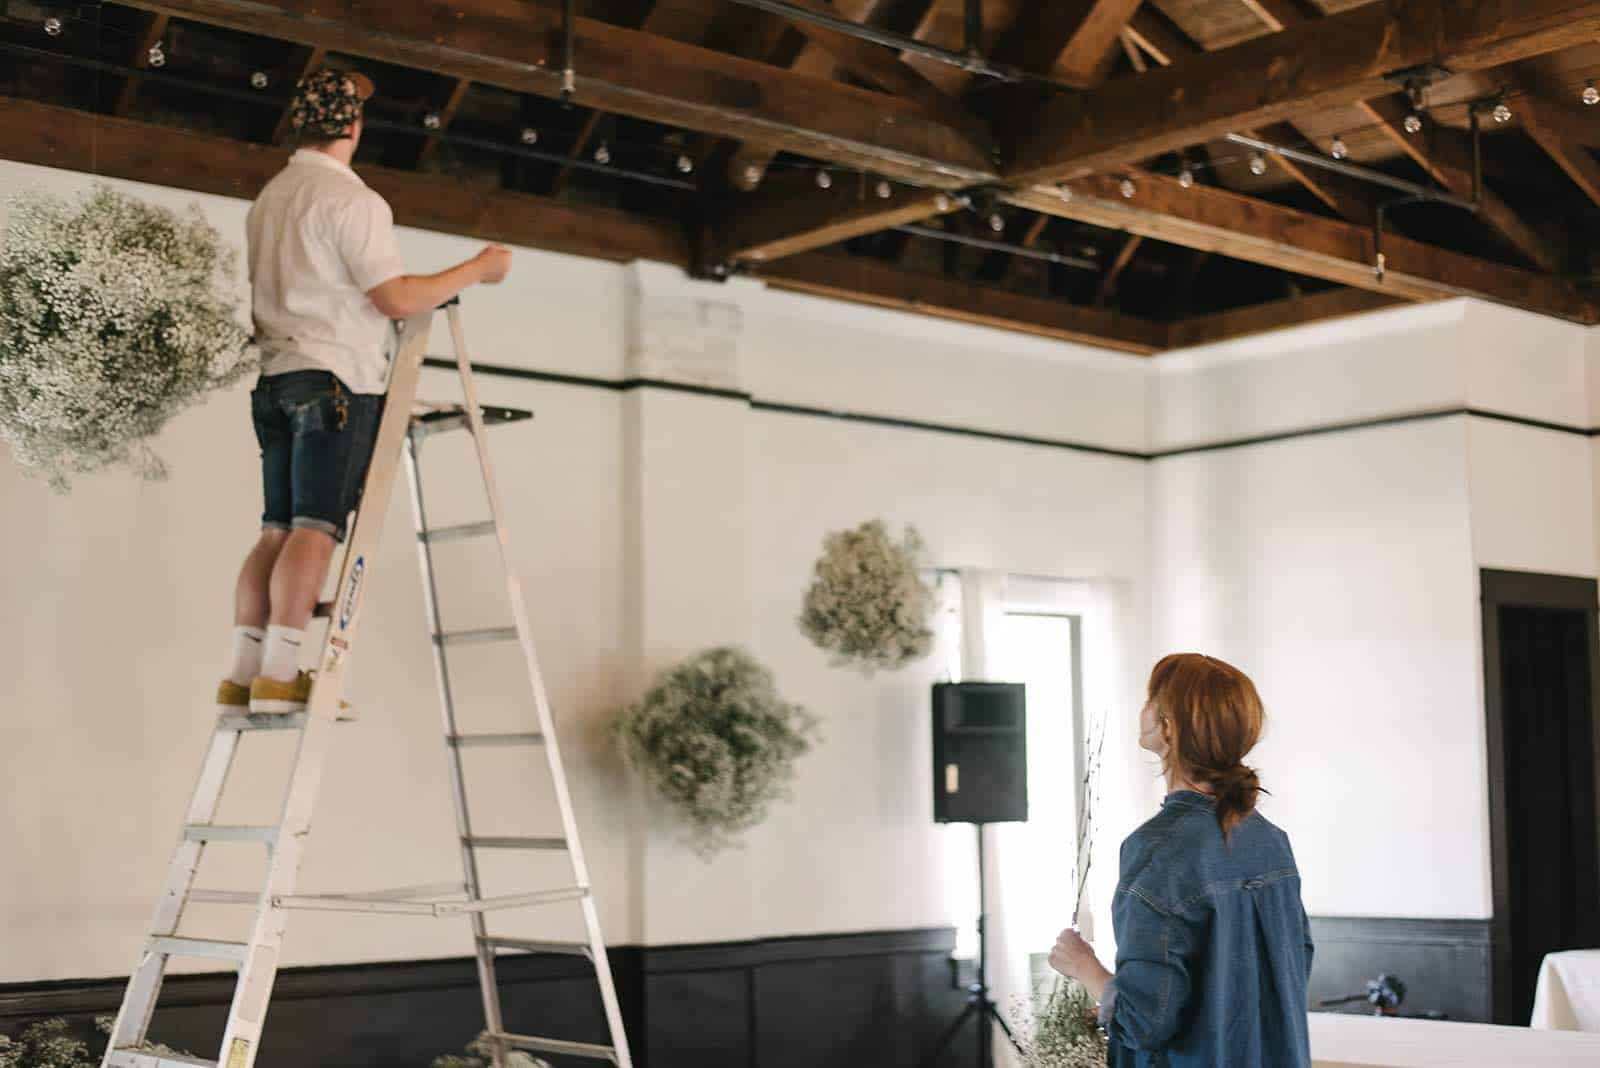 Mayesh Design Star How to Make a Floating Installation